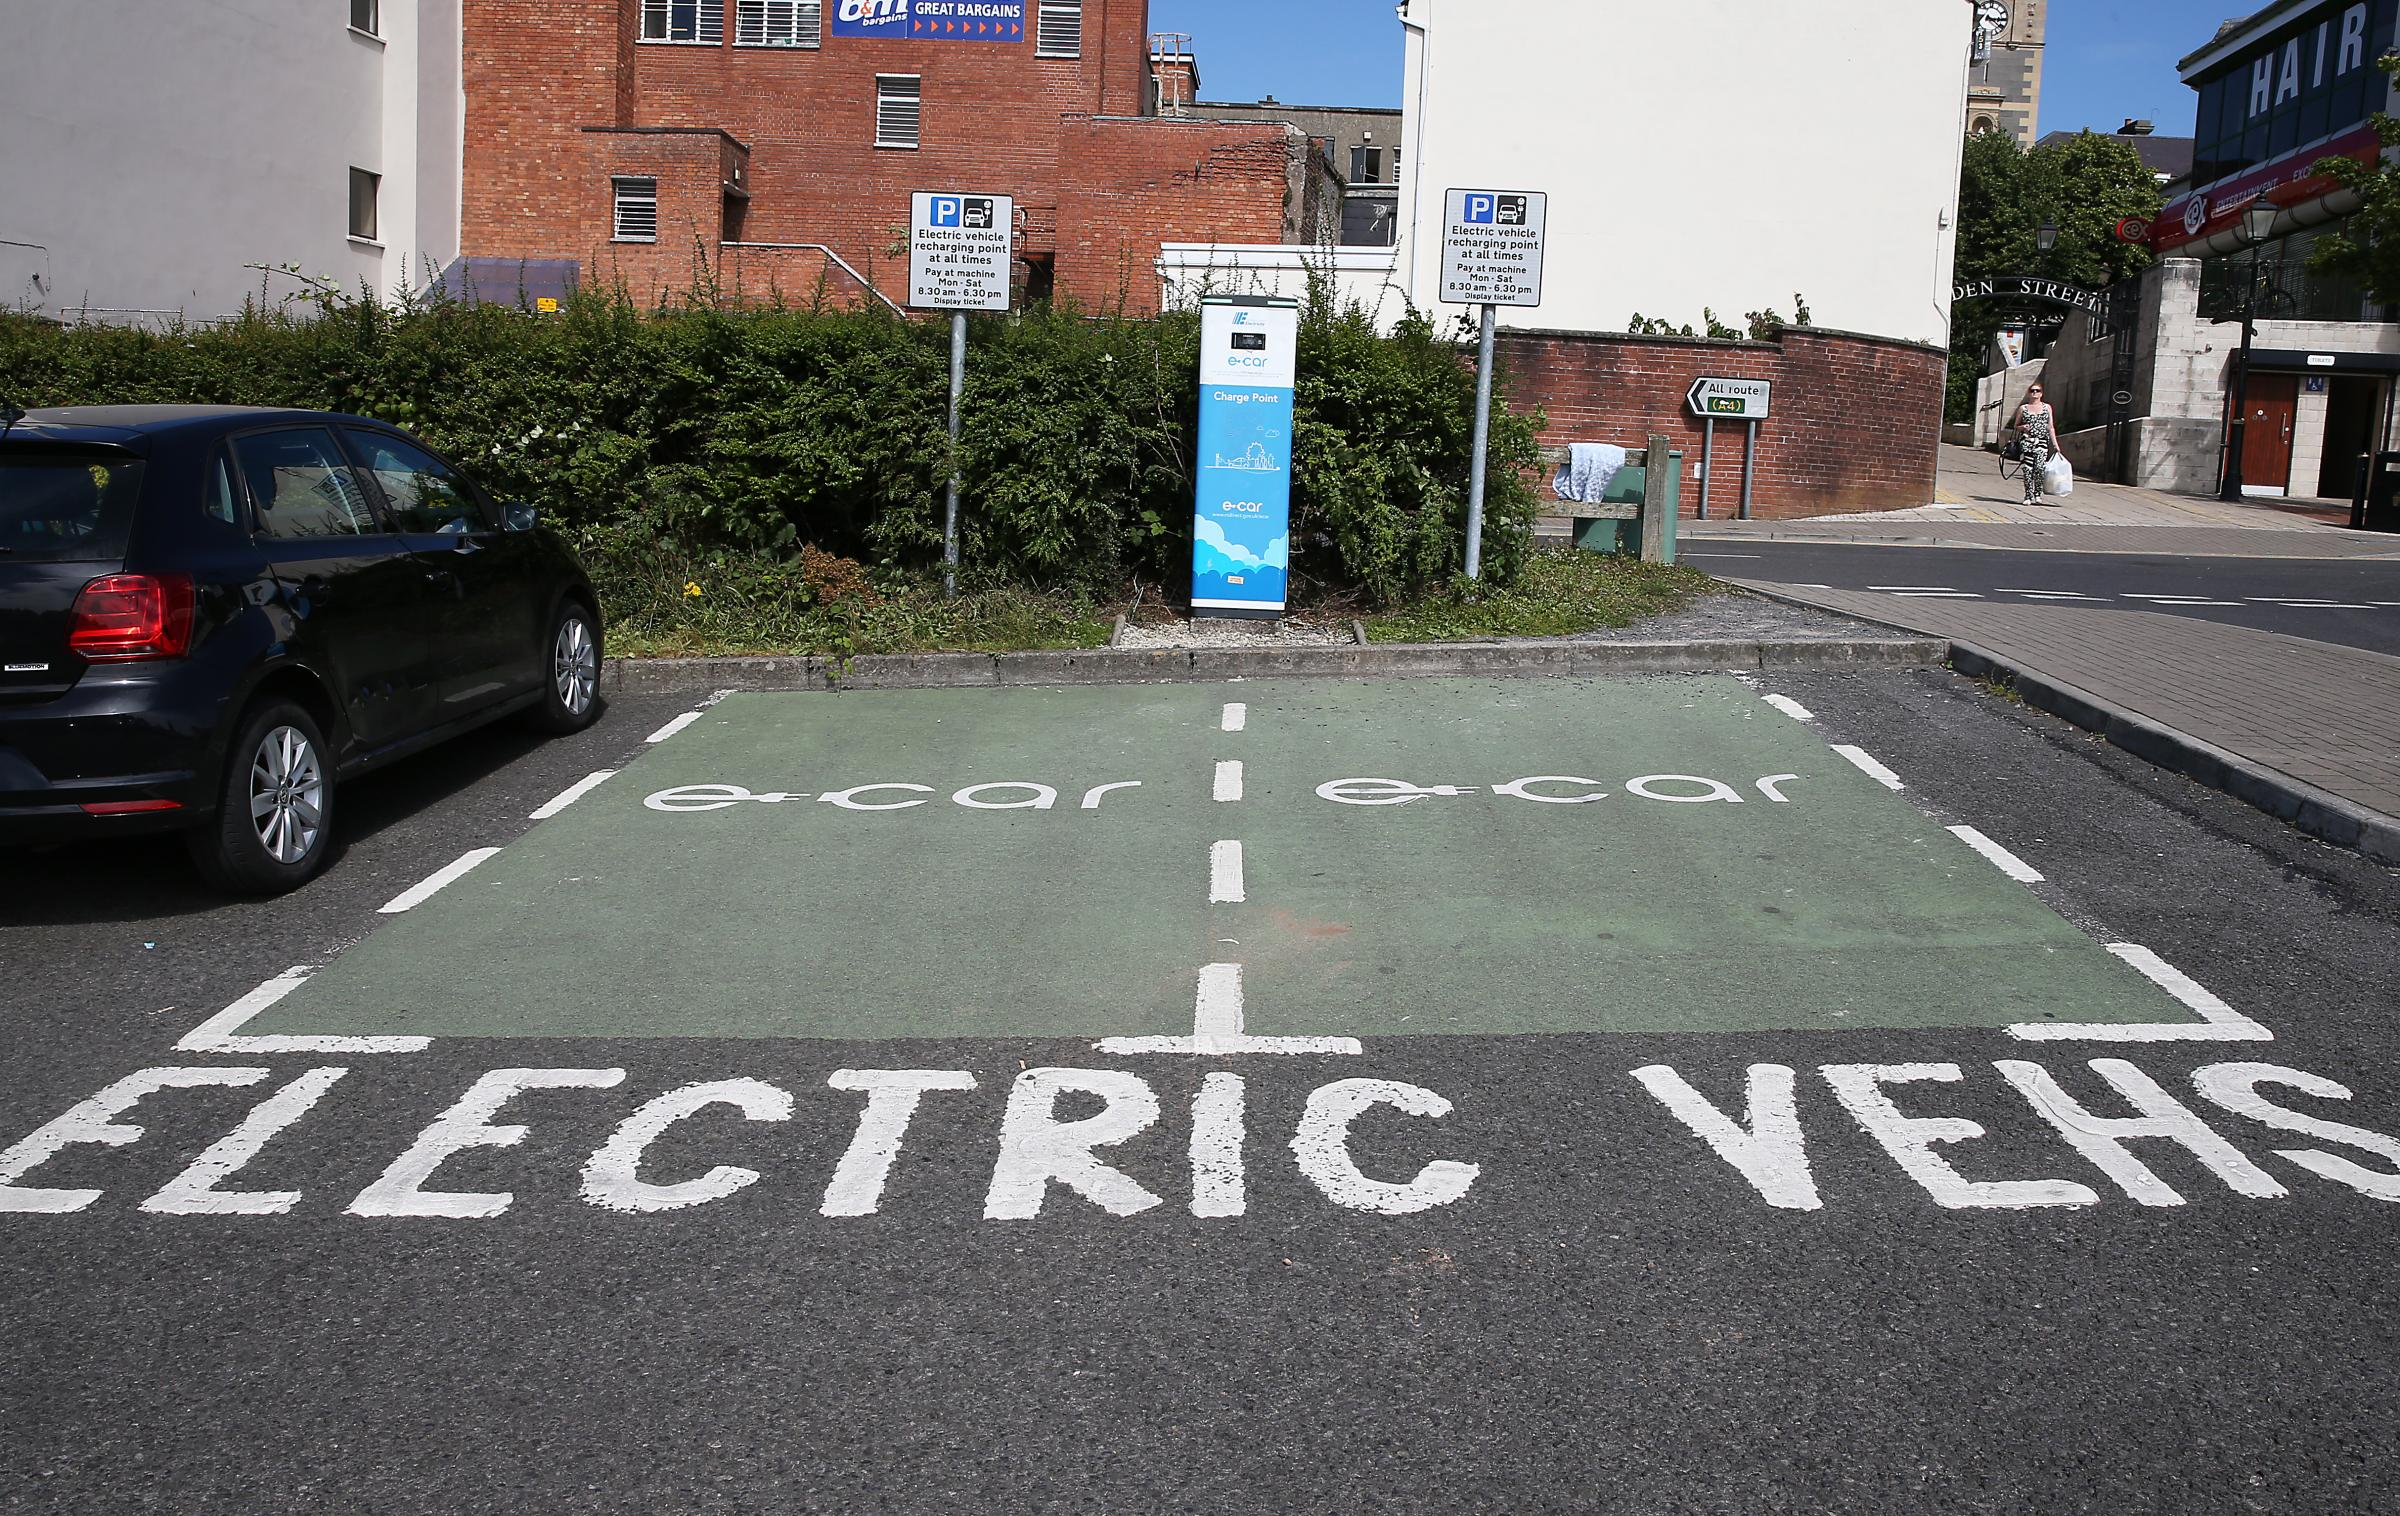 Plans to relocate under-used ecar charging points to other